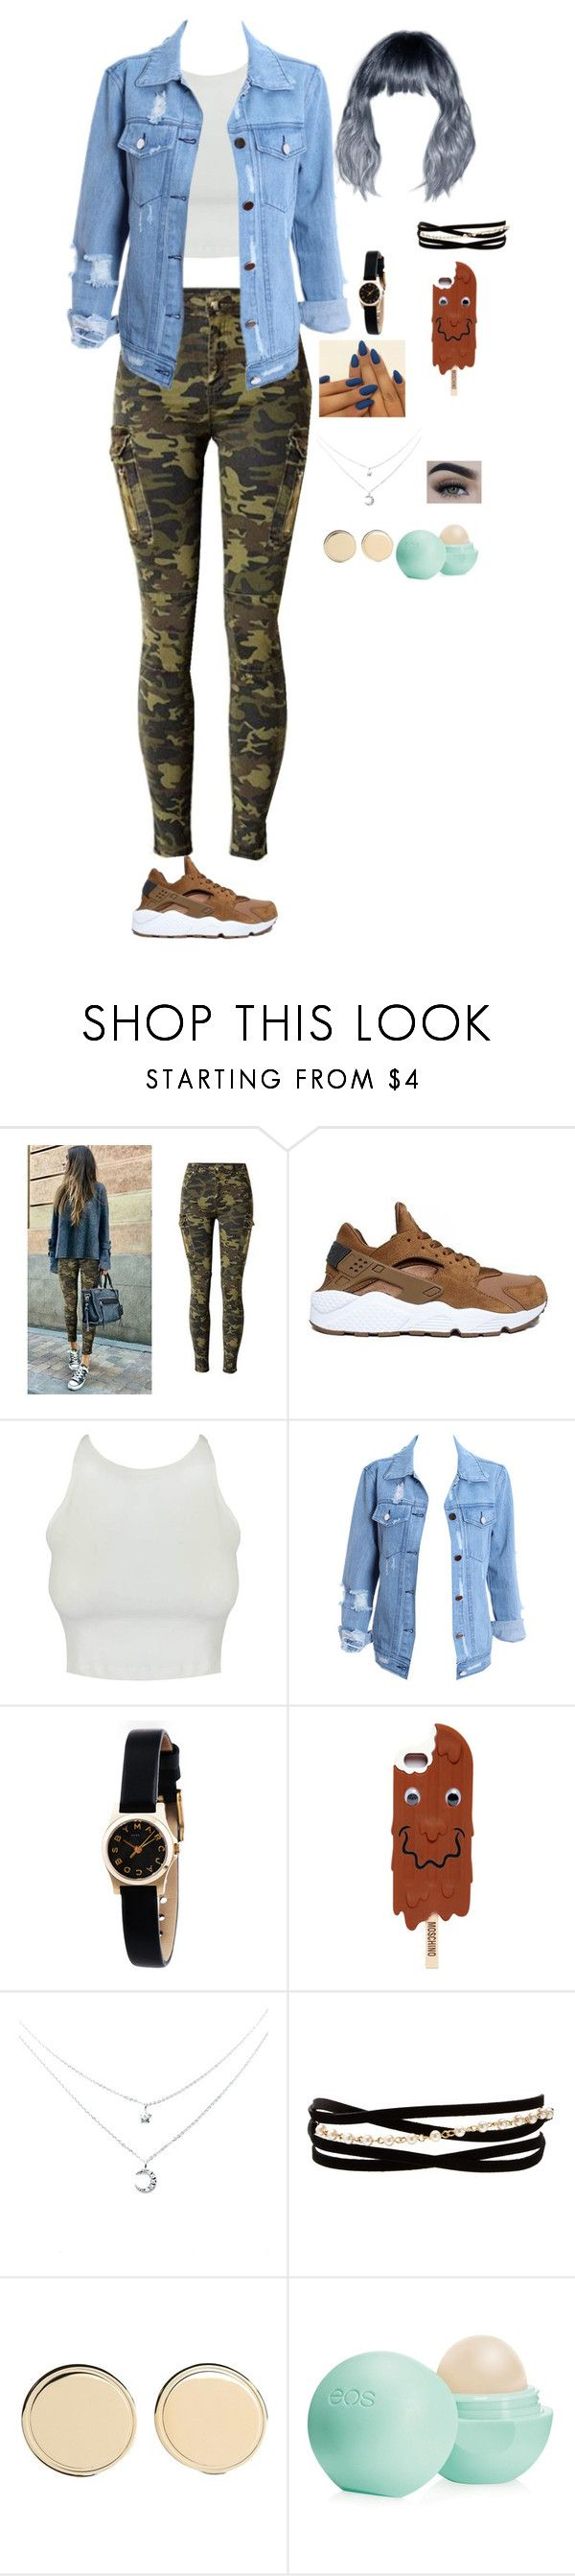 """Sin título #328"" by alyari on Polyvore featuring moda, NIKE, Marc by Marc Jacobs, Moschino, Kenneth Jay Lane, Givenchy y Eos"